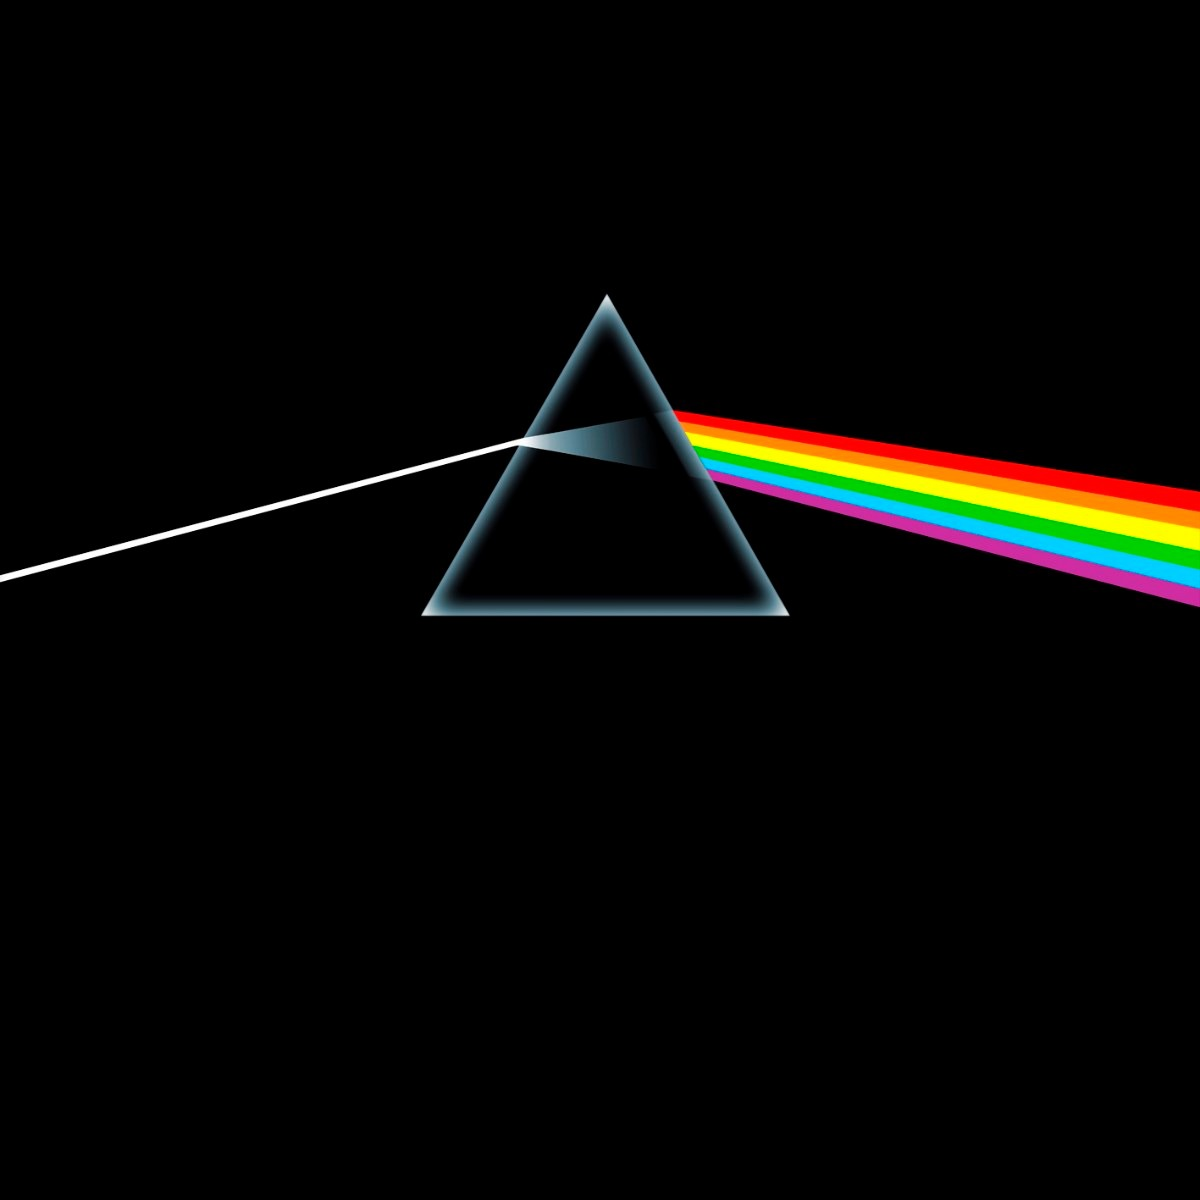 Pink-Floyd-Dark-Side-Of-The-Moon-90x90cm-20130707144231